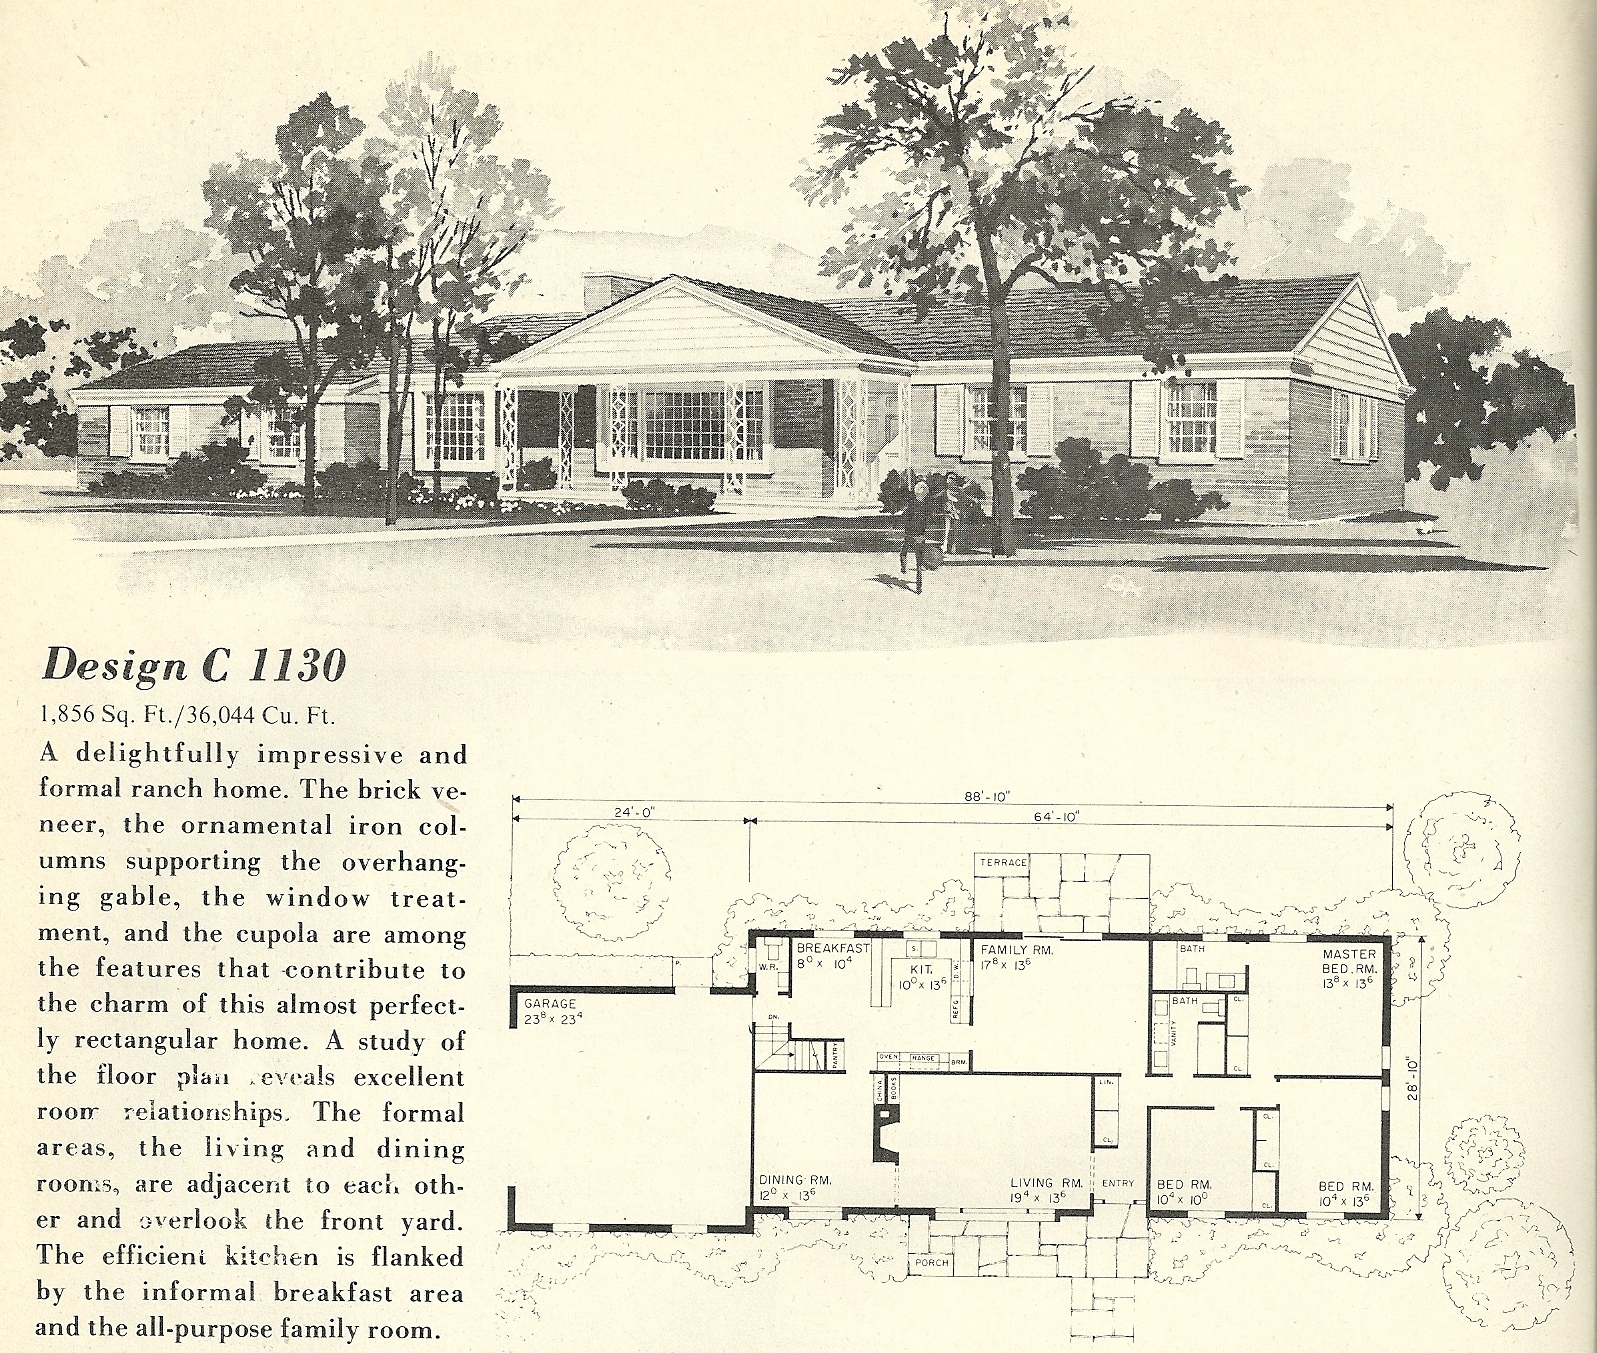 Vintage house plans 1130 antique alter ego for Vintage home plans